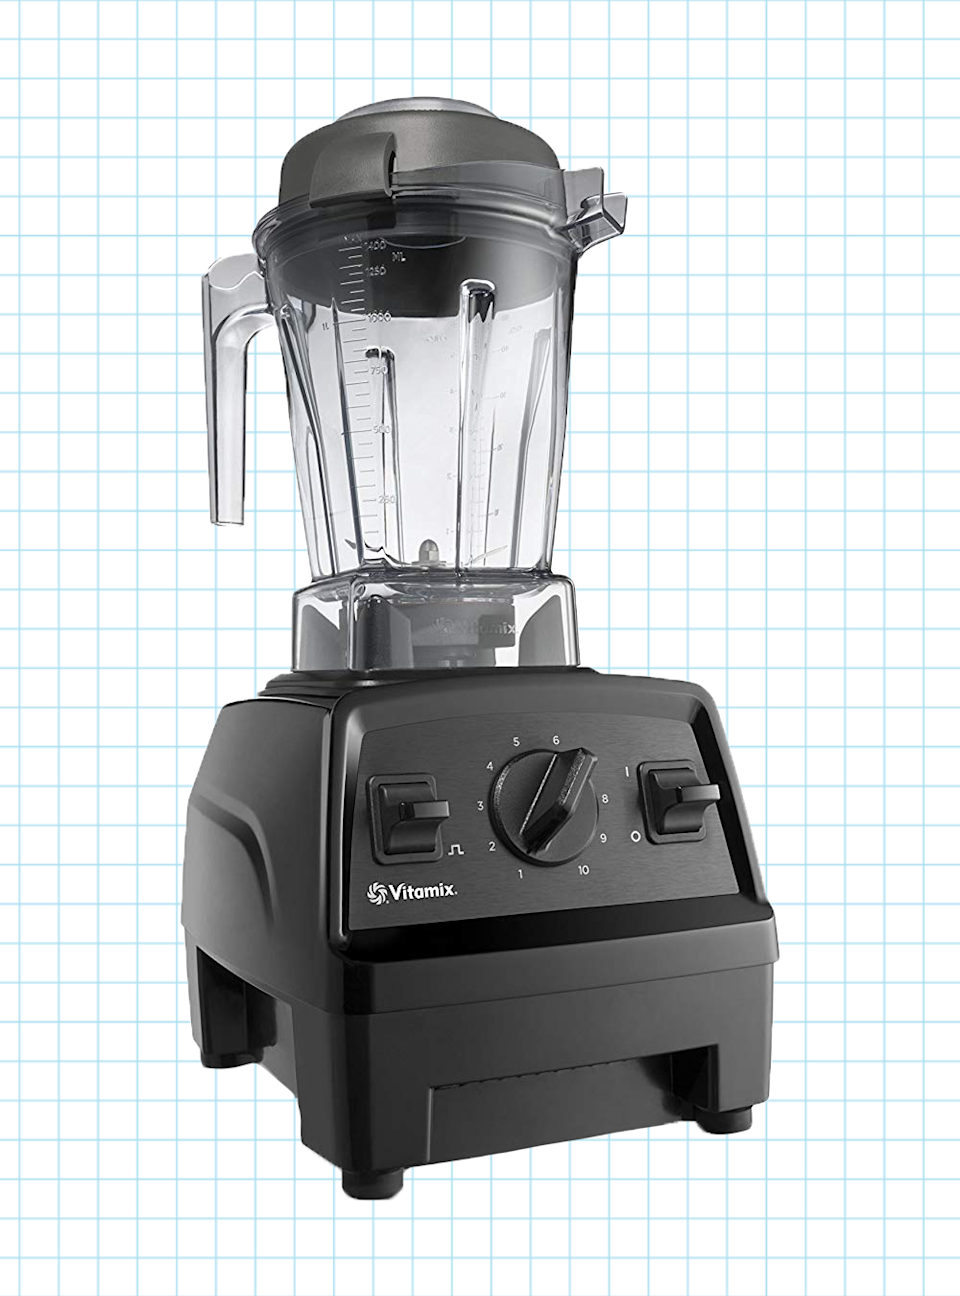 "<p><strong>Vitamix</strong></p><p>amazon.com</p><p><strong>349.95</strong></p><p><a href=""https://www.amazon.com/dp/B0758JHZM3?tag=syn-yahoo-20&ascsubtag=%5Bartid%7C10055.g.4864%5Bsrc%7Cyahoo-us"" rel=""nofollow noopener"" target=""_blank"" data-ylk=""slk:Shop Now"" class=""link rapid-noclick-resp"">Shop Now</a></p><p>It's a cult fave for a reason: Short of cleaning your kitchen there's nothing the showpiece Vitamix can't do. With pro-quality precision and control, it can make everything from perfectly smooth nut butters to hearty soups and more. The <strong>ultra powerful motor has 10 variable speed settings </strong>and its heavy duty base won't easily move on the counter when in use. </p><p>The controls are intuitive and fuss-free and this machine excelled in every one of our Kitchen Appliances Lab tests, easily grinding coffee beans and whirling up milkshakes and margs in seconds. It's an investment, but you won't find a better-performing more durable pick at a fraction of the cost of other Vitamix models. </p><p><strong>Cons</strong>: Its only limitations are the steep price tag and the container is on the small side at just six cups.</p>"